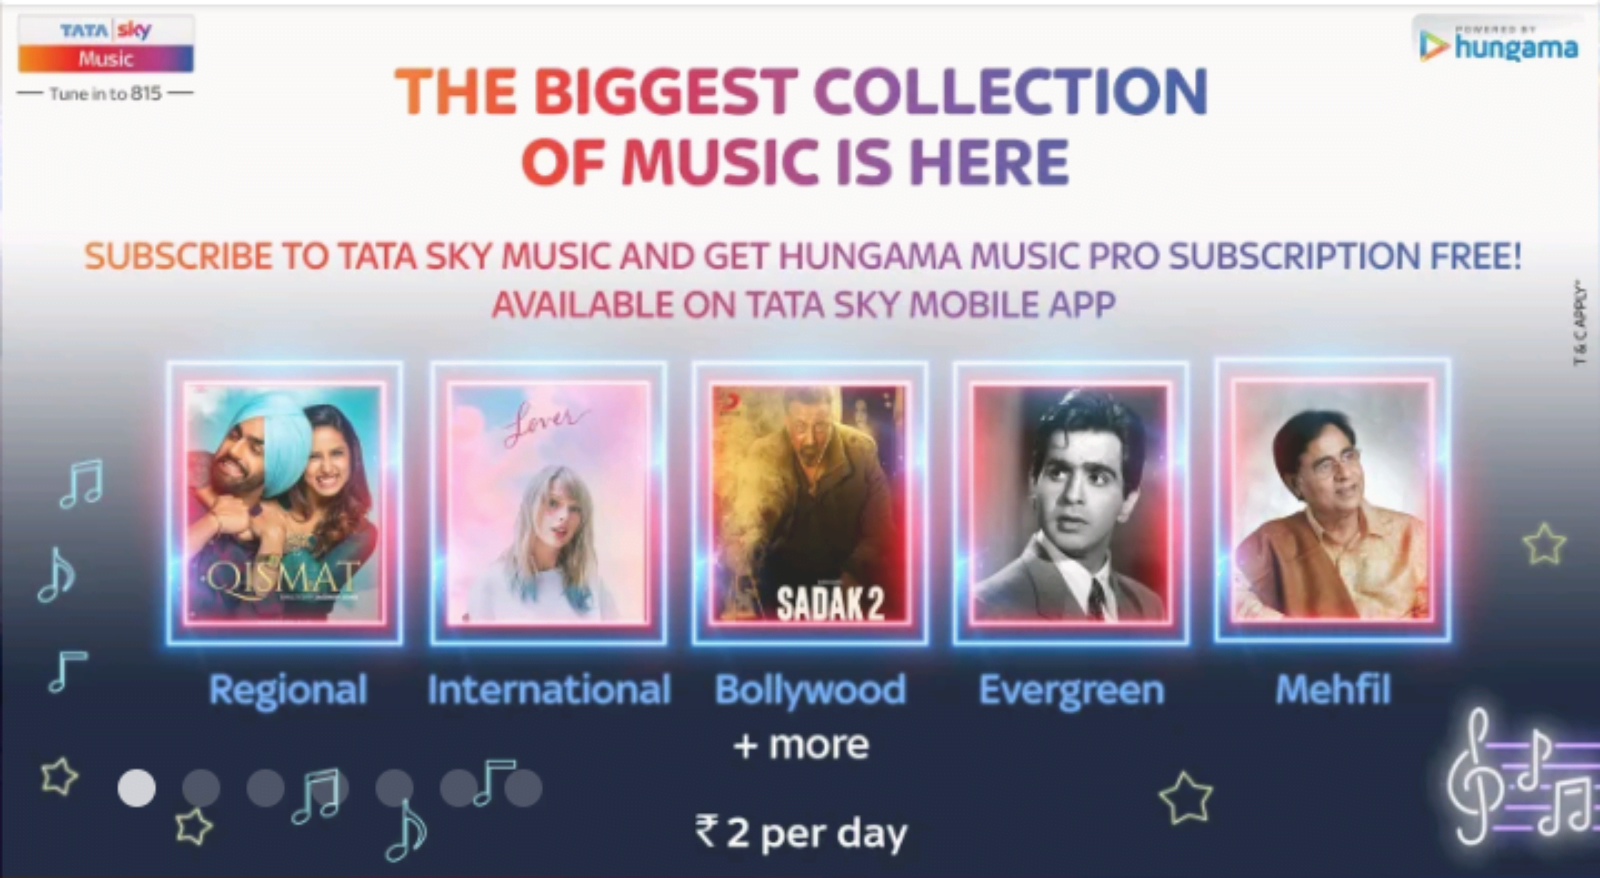 Tata Sky offering free Hungama Music Pro subscription to Music and Music+ subscribers